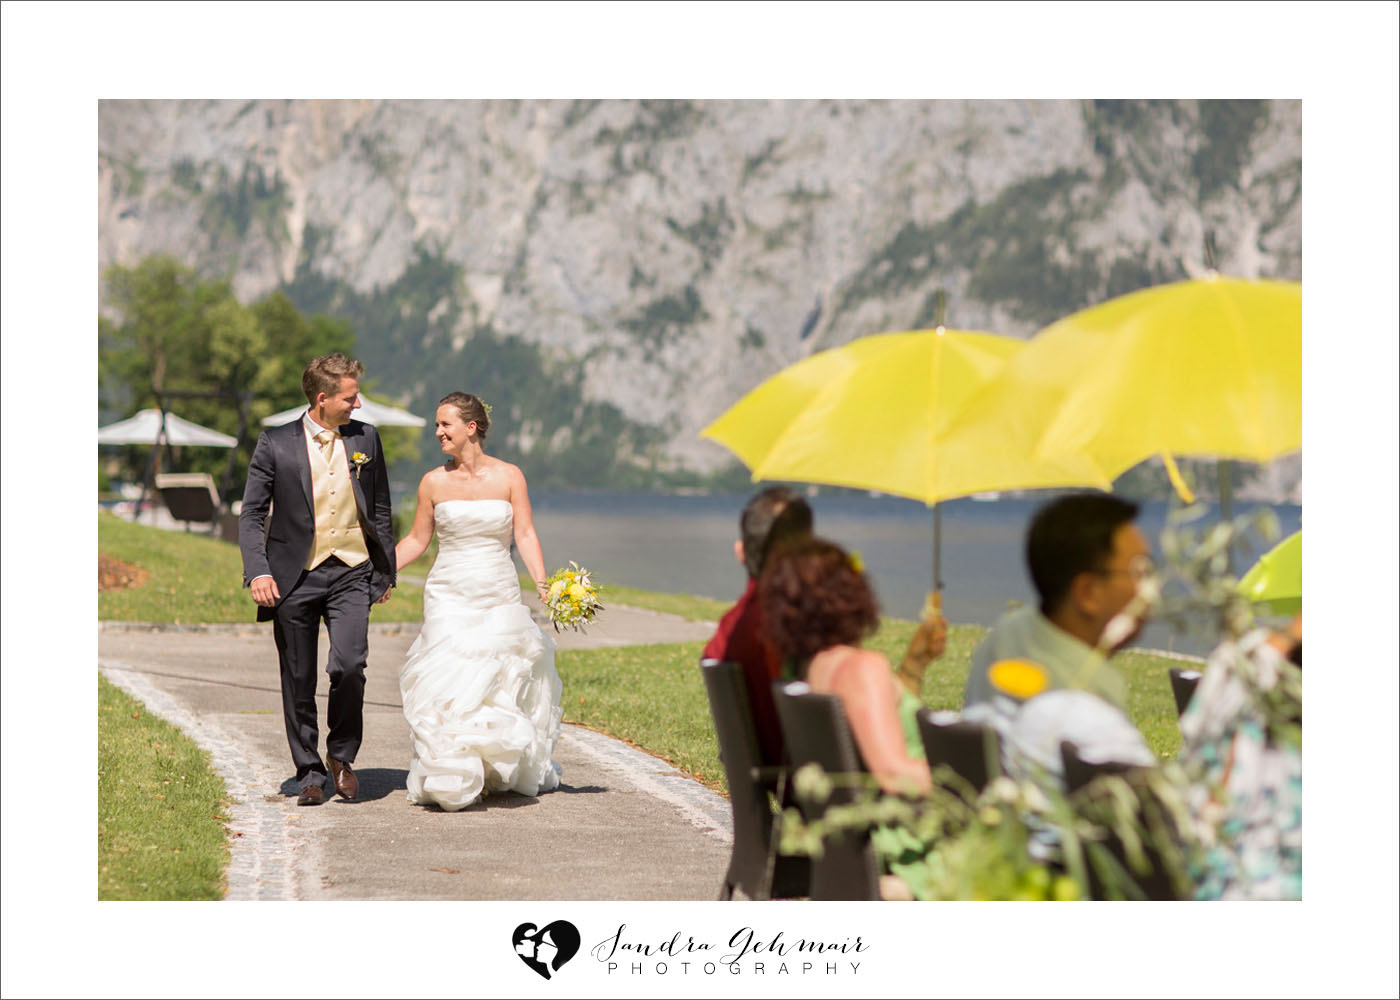 022_heiraten_am_see_spitzvilla_sandra_gehmair